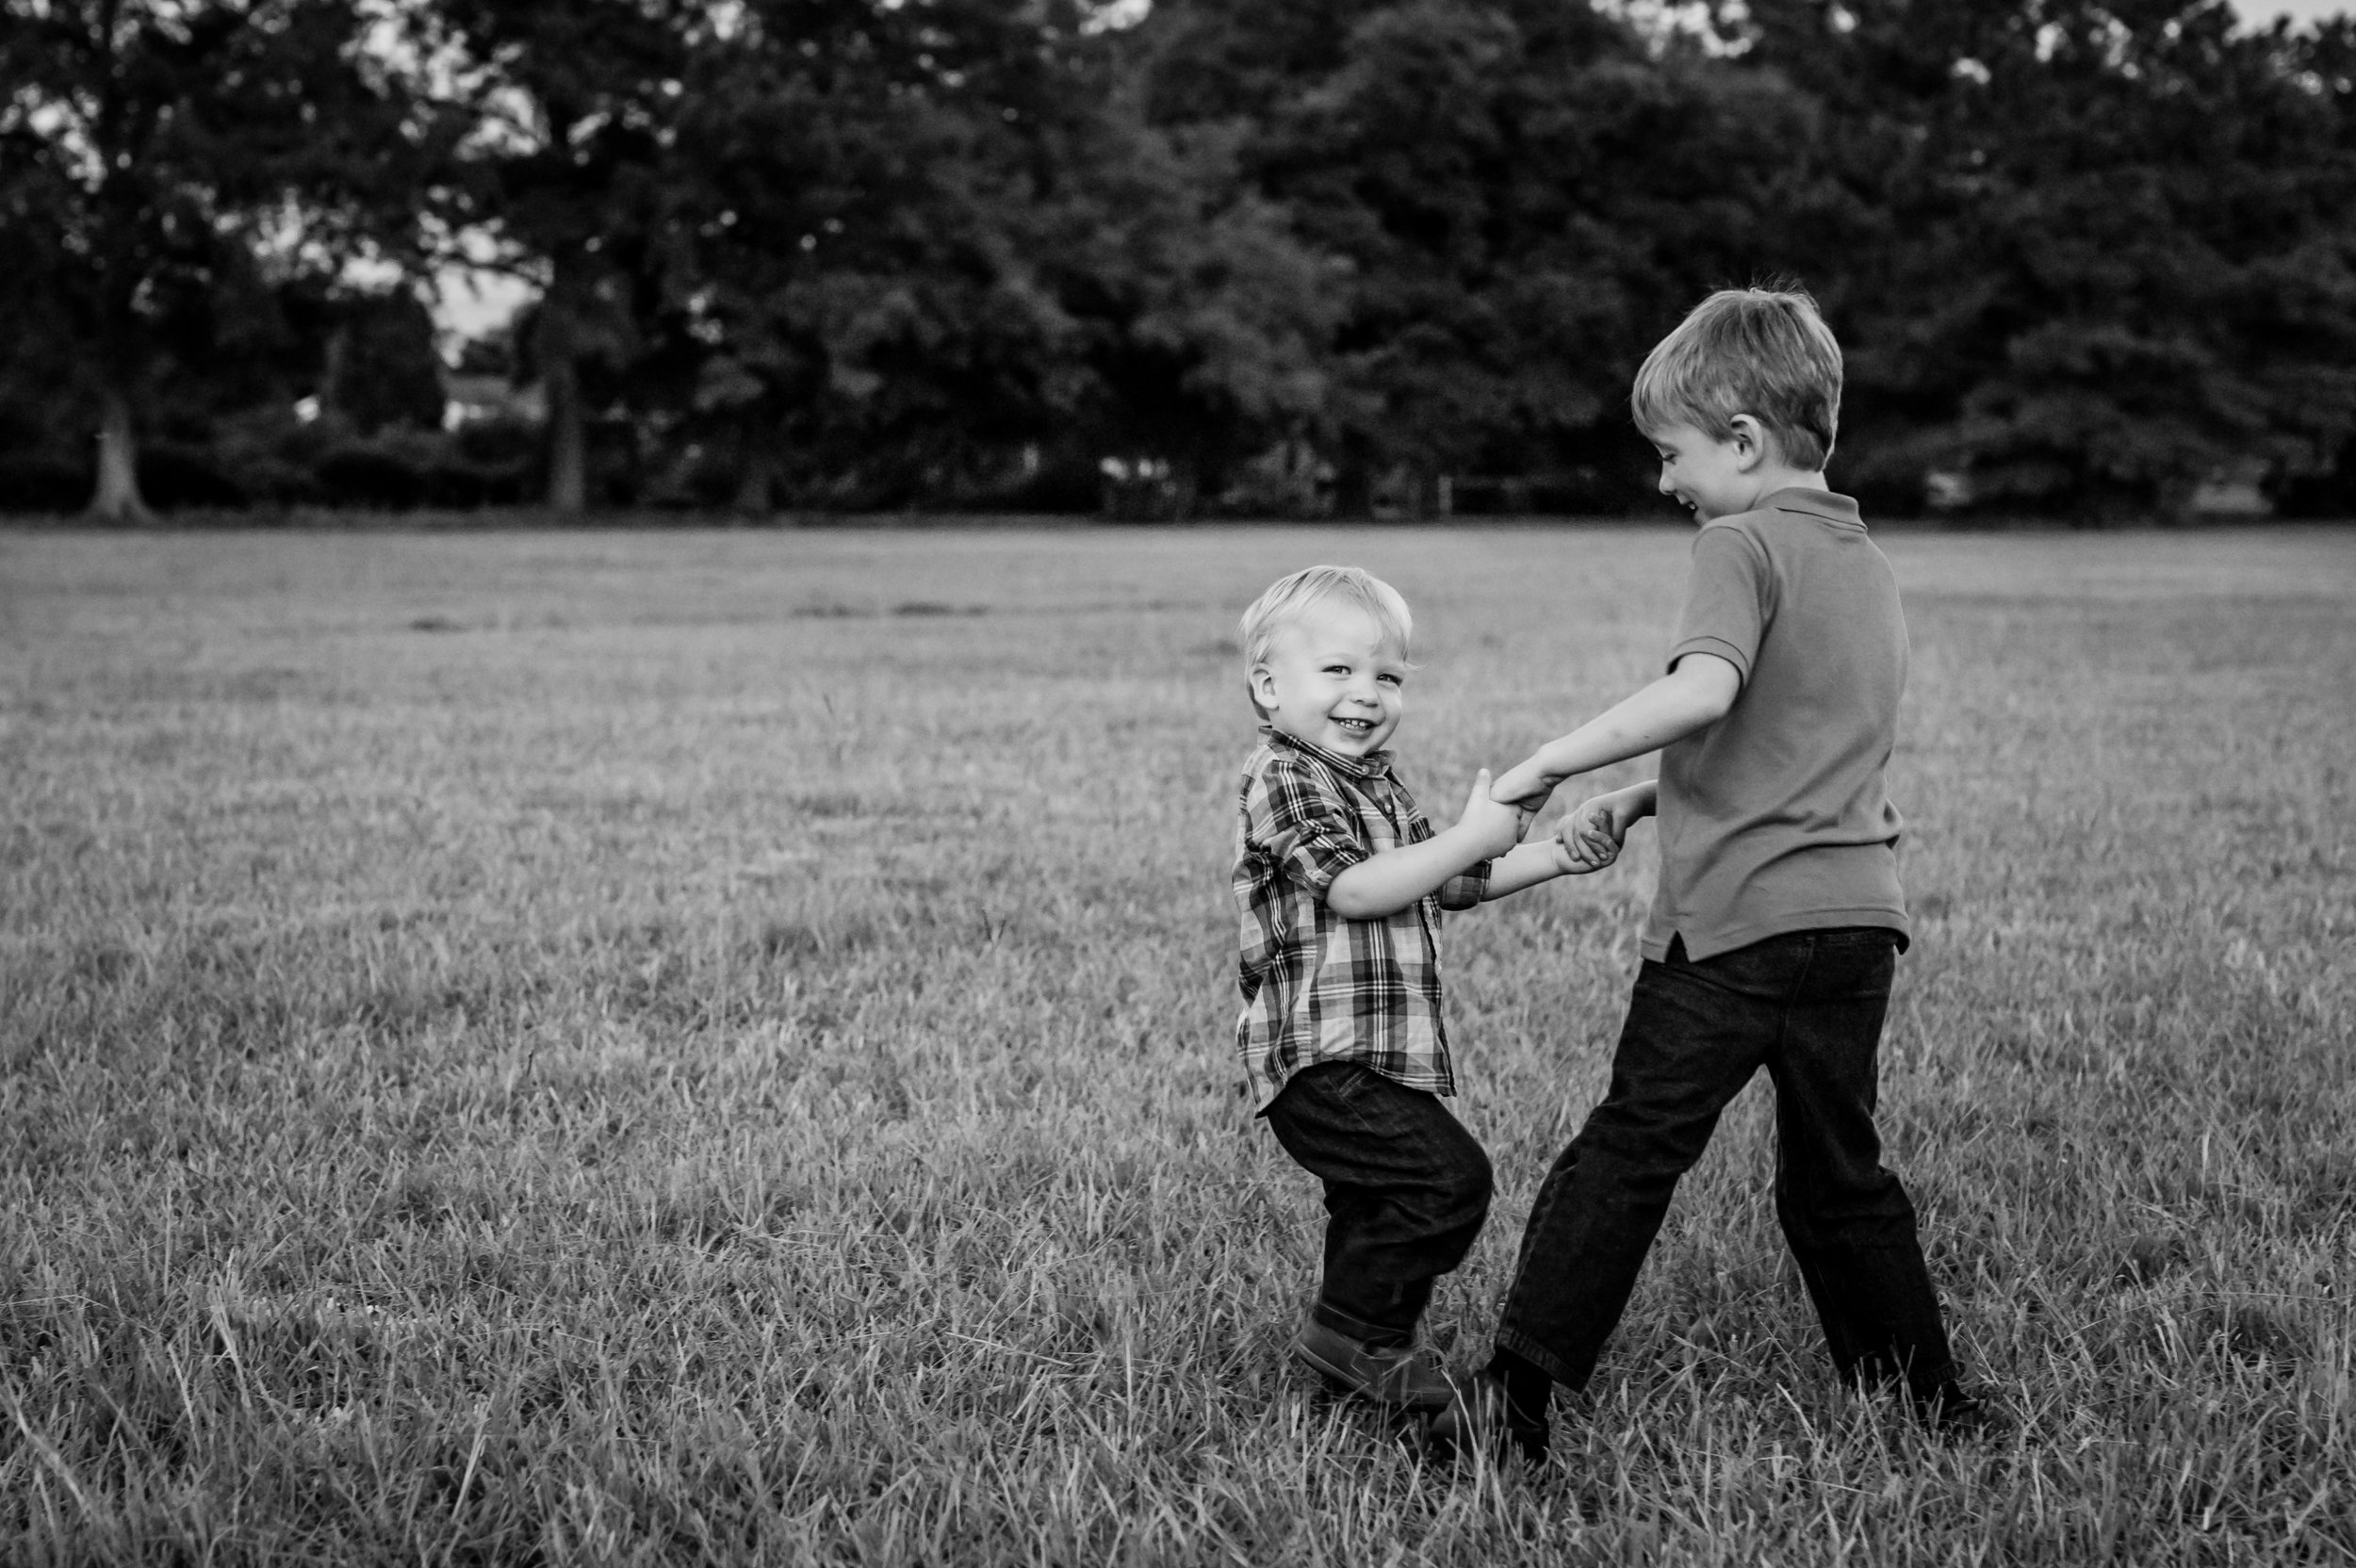 brothers playing ring around the rosey with junebug photography studio in manhattan, ks